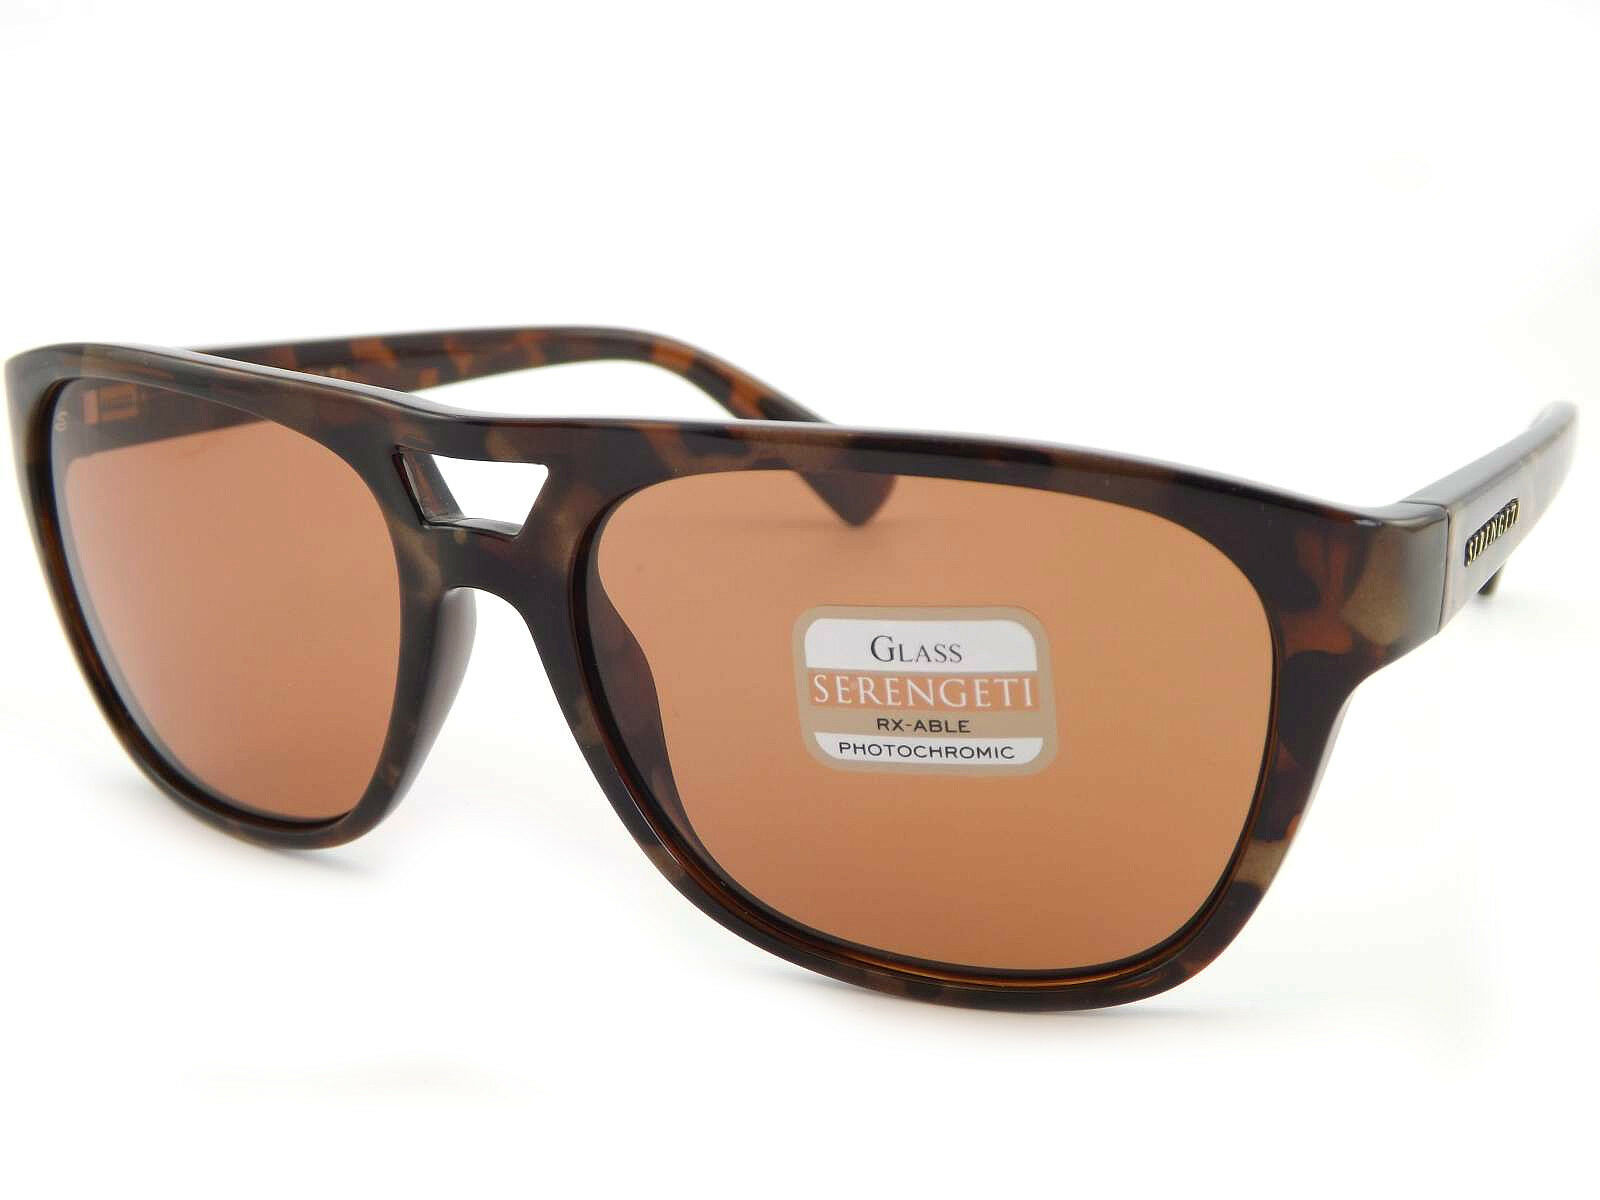 7fda5d8bb0 Details about SERENGETI Photochromic Tommaso Sunglasses Shiny Taupe Tortoise    Drivers 7958